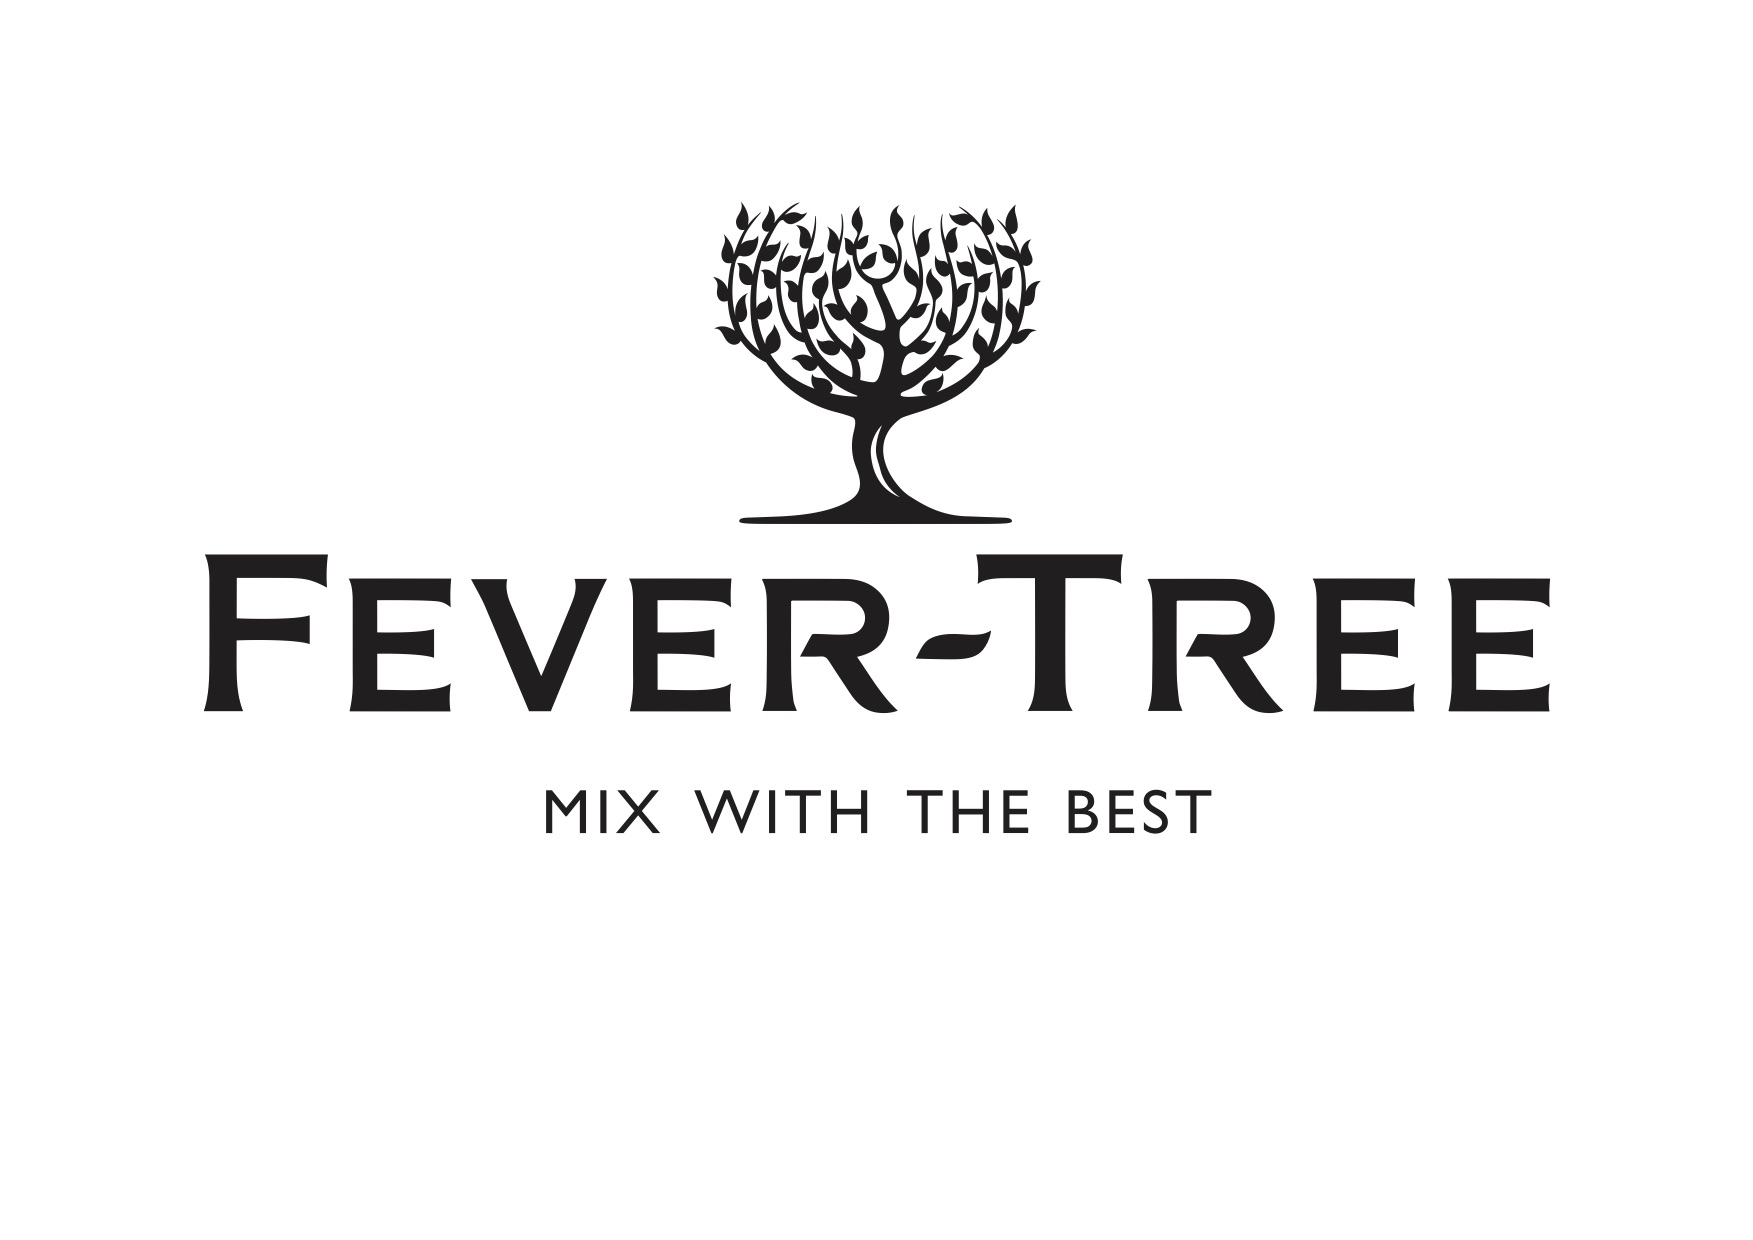 fever-tree-logo-primary-black.jpg